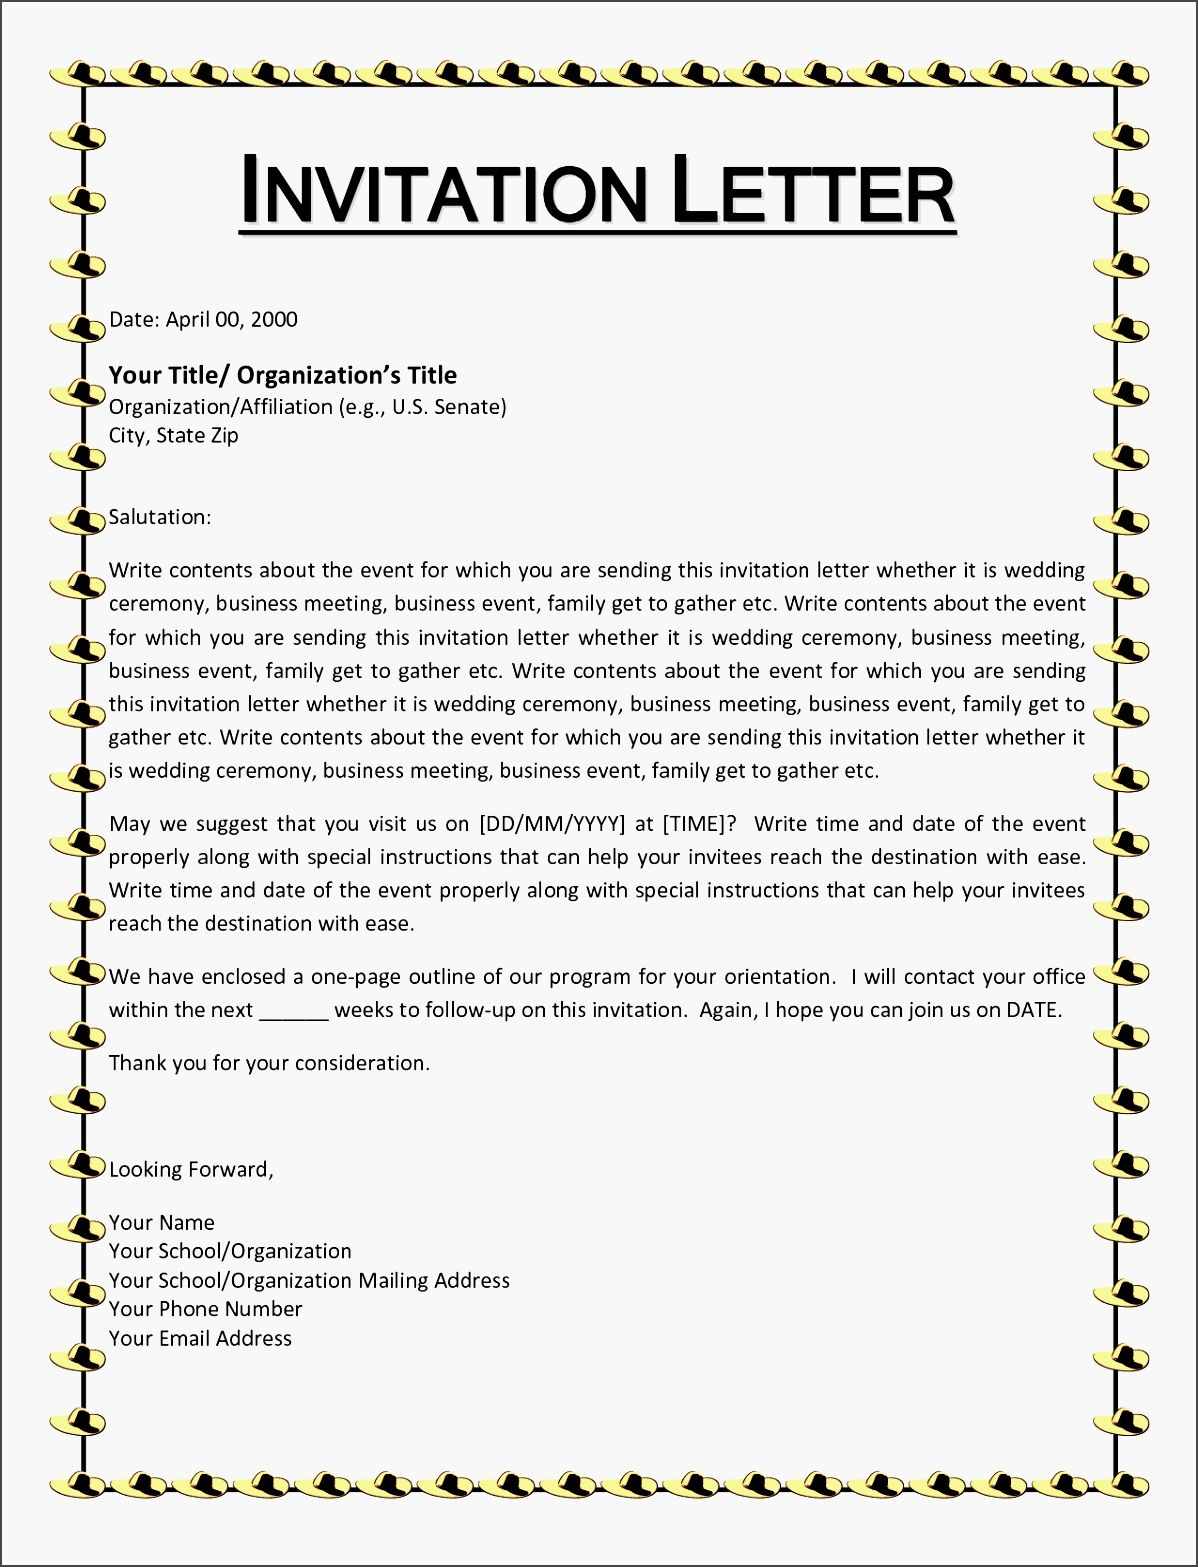 Invitation Letter Informal Saevk Beautiful Wedding Invitation Letter Informal Wedding Invitation